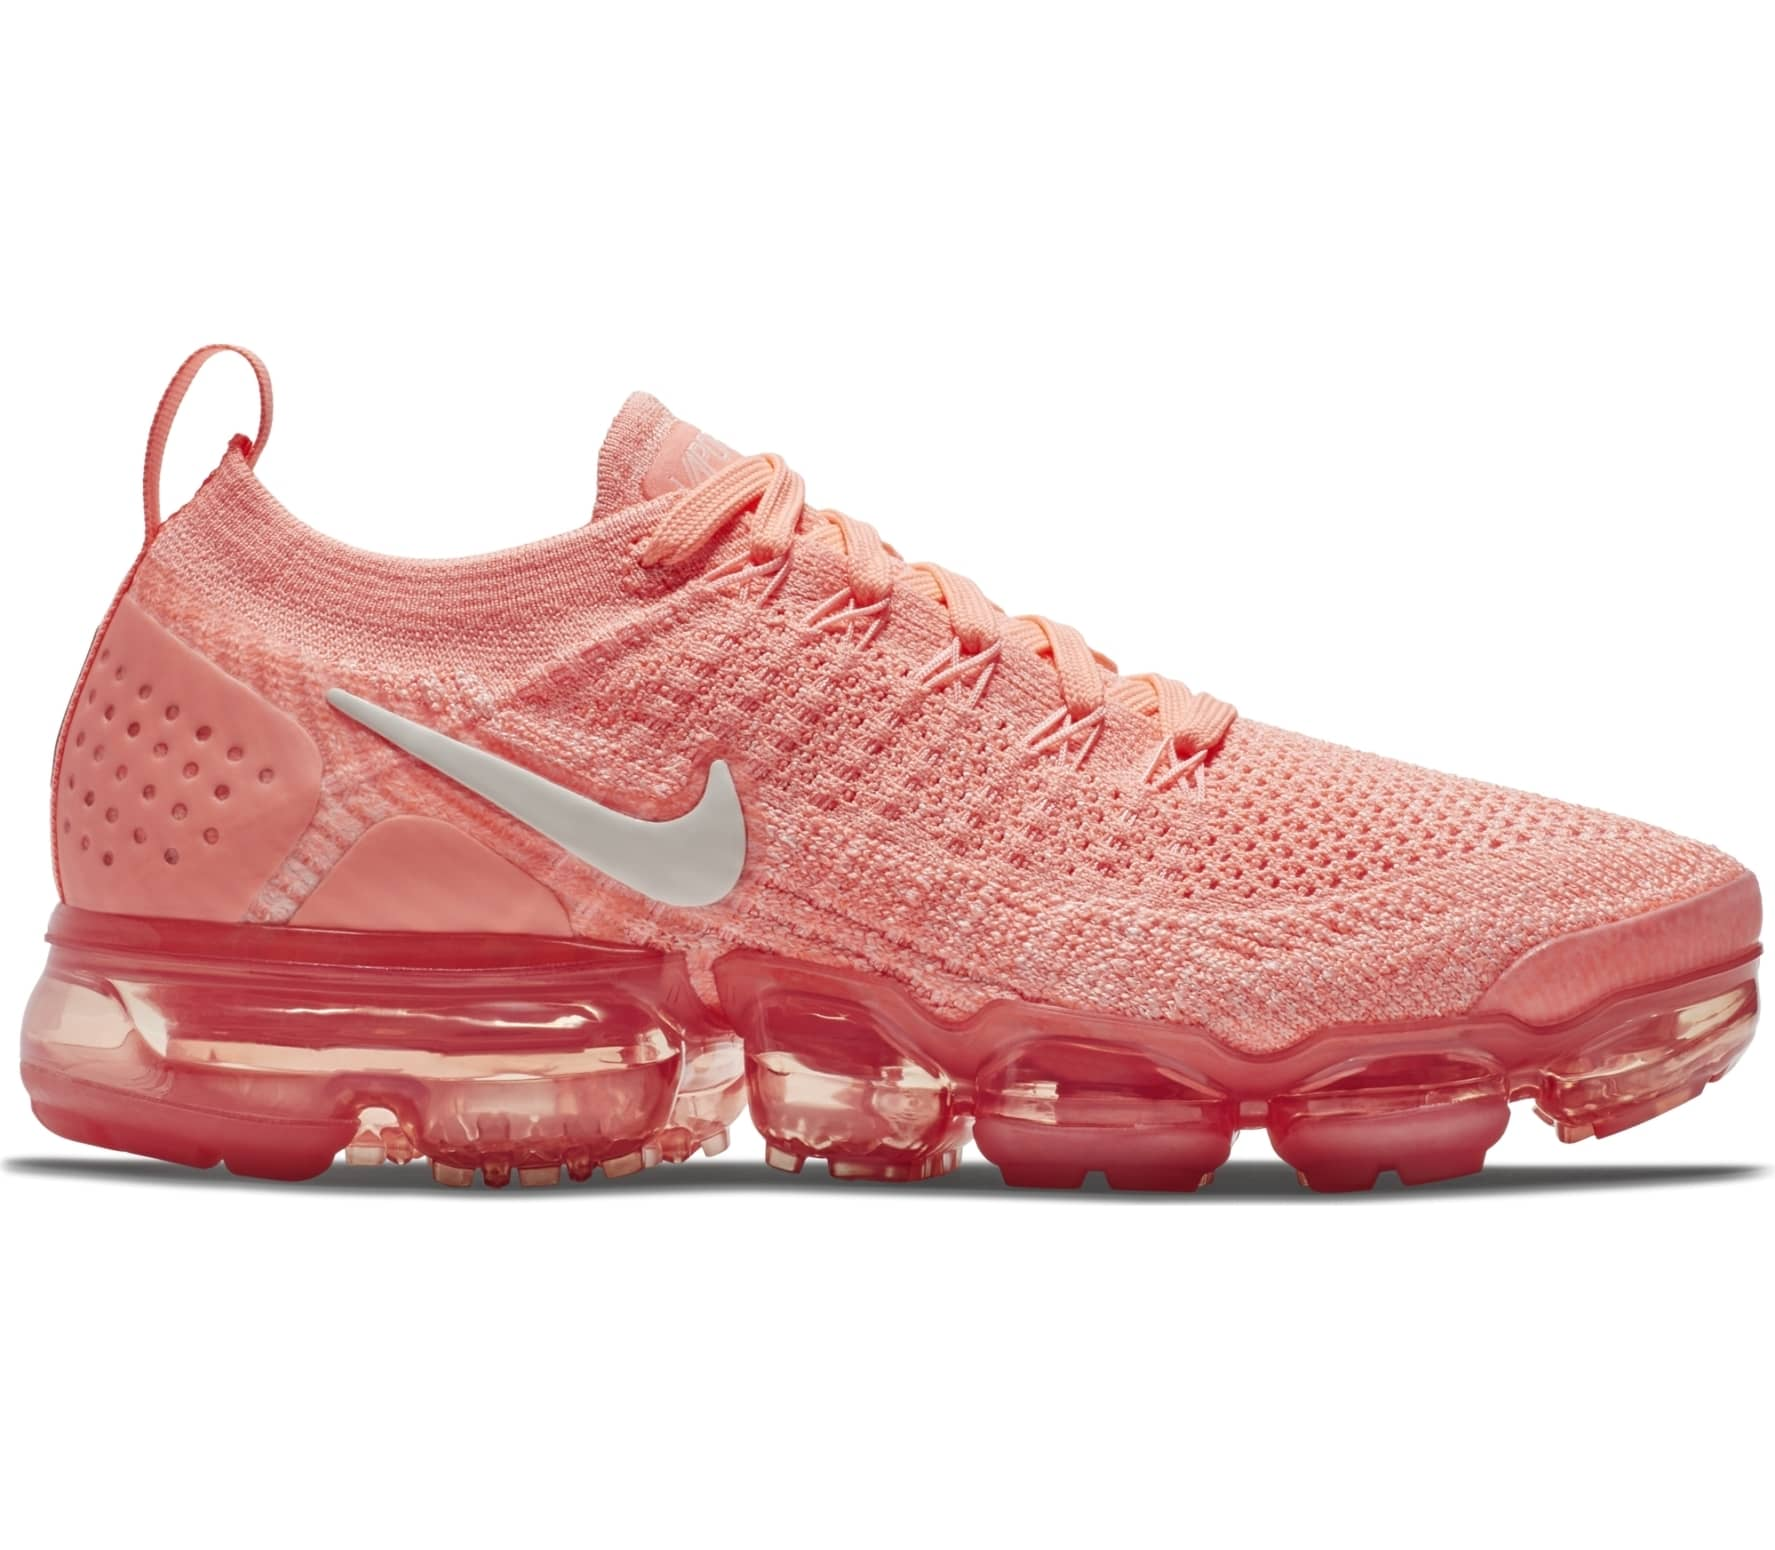 8ebf3a4cd537 Nike - Air VaporMax Flyknit 2 women s running shoes (coral pink ...